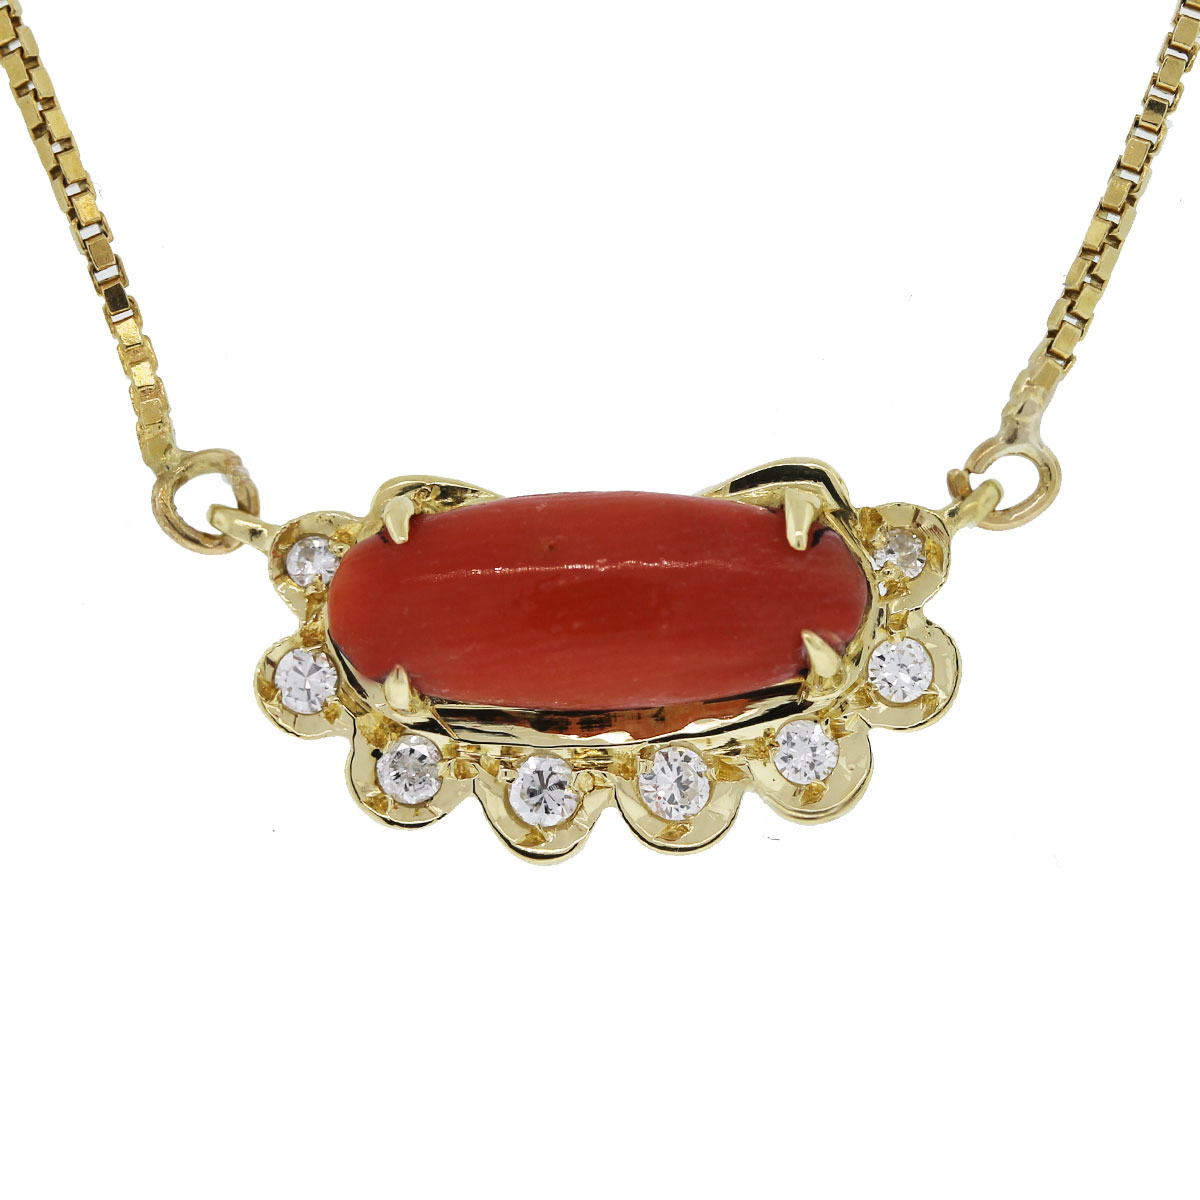 We love this 18kt Yellow Gold Cabochon Coral and Diamond Necklace